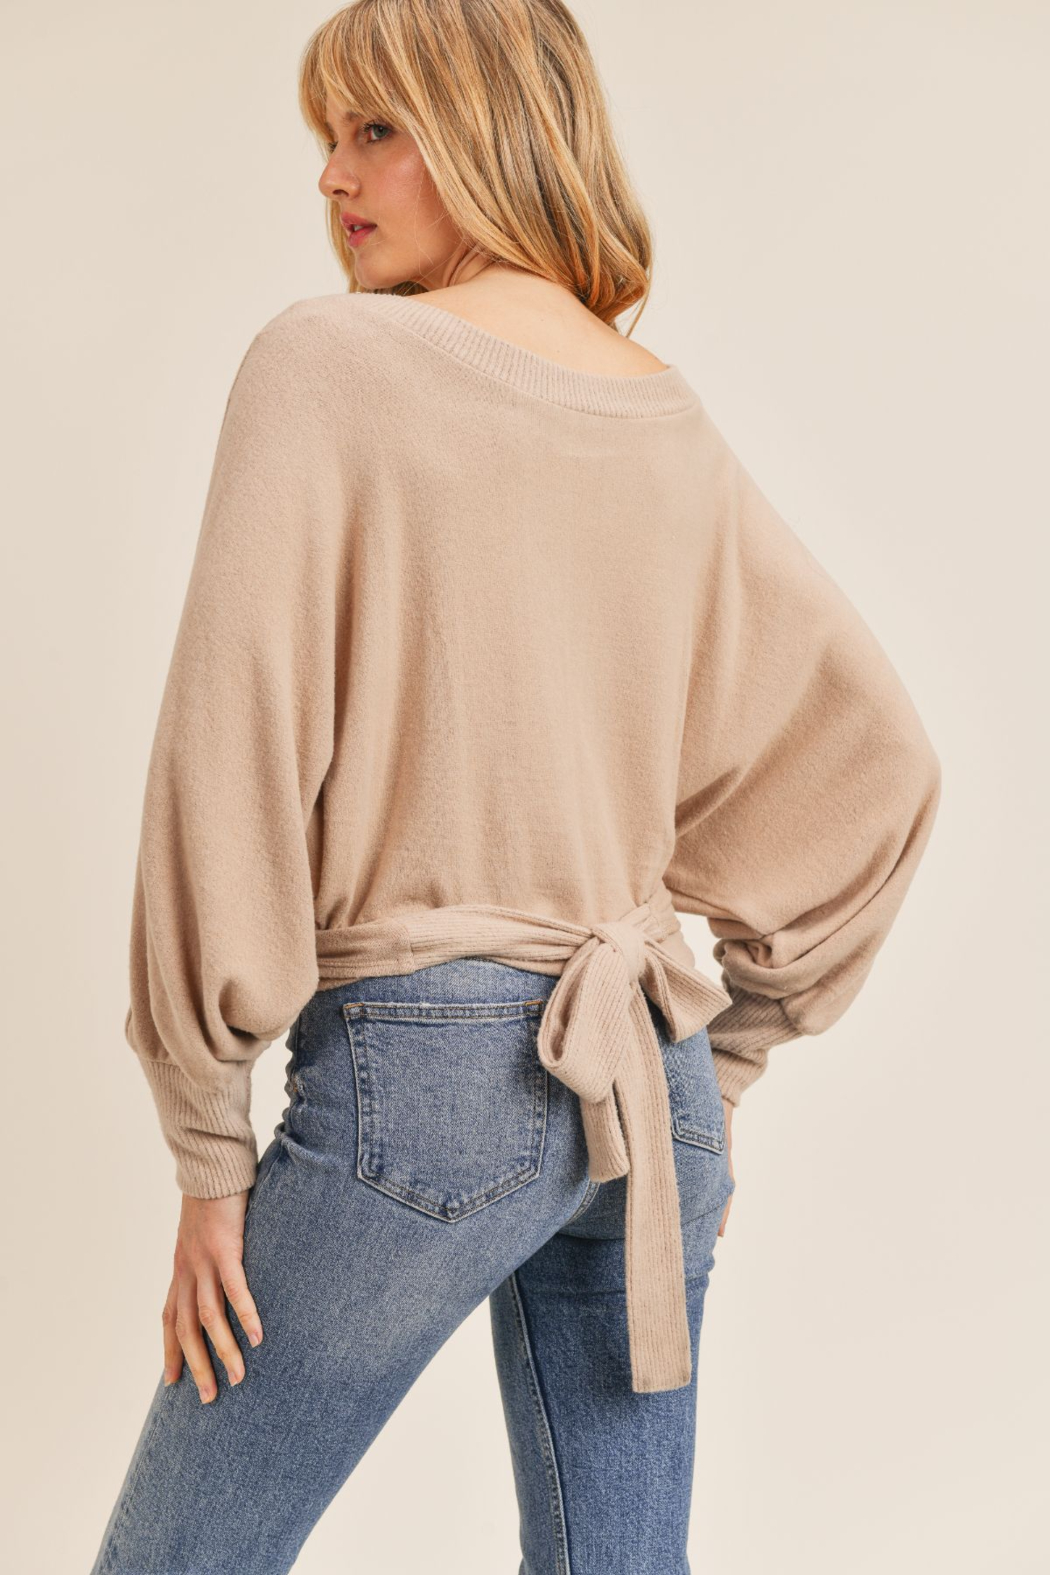 Sadie & Sage Here For You Wrap Top - Side Cropped Image